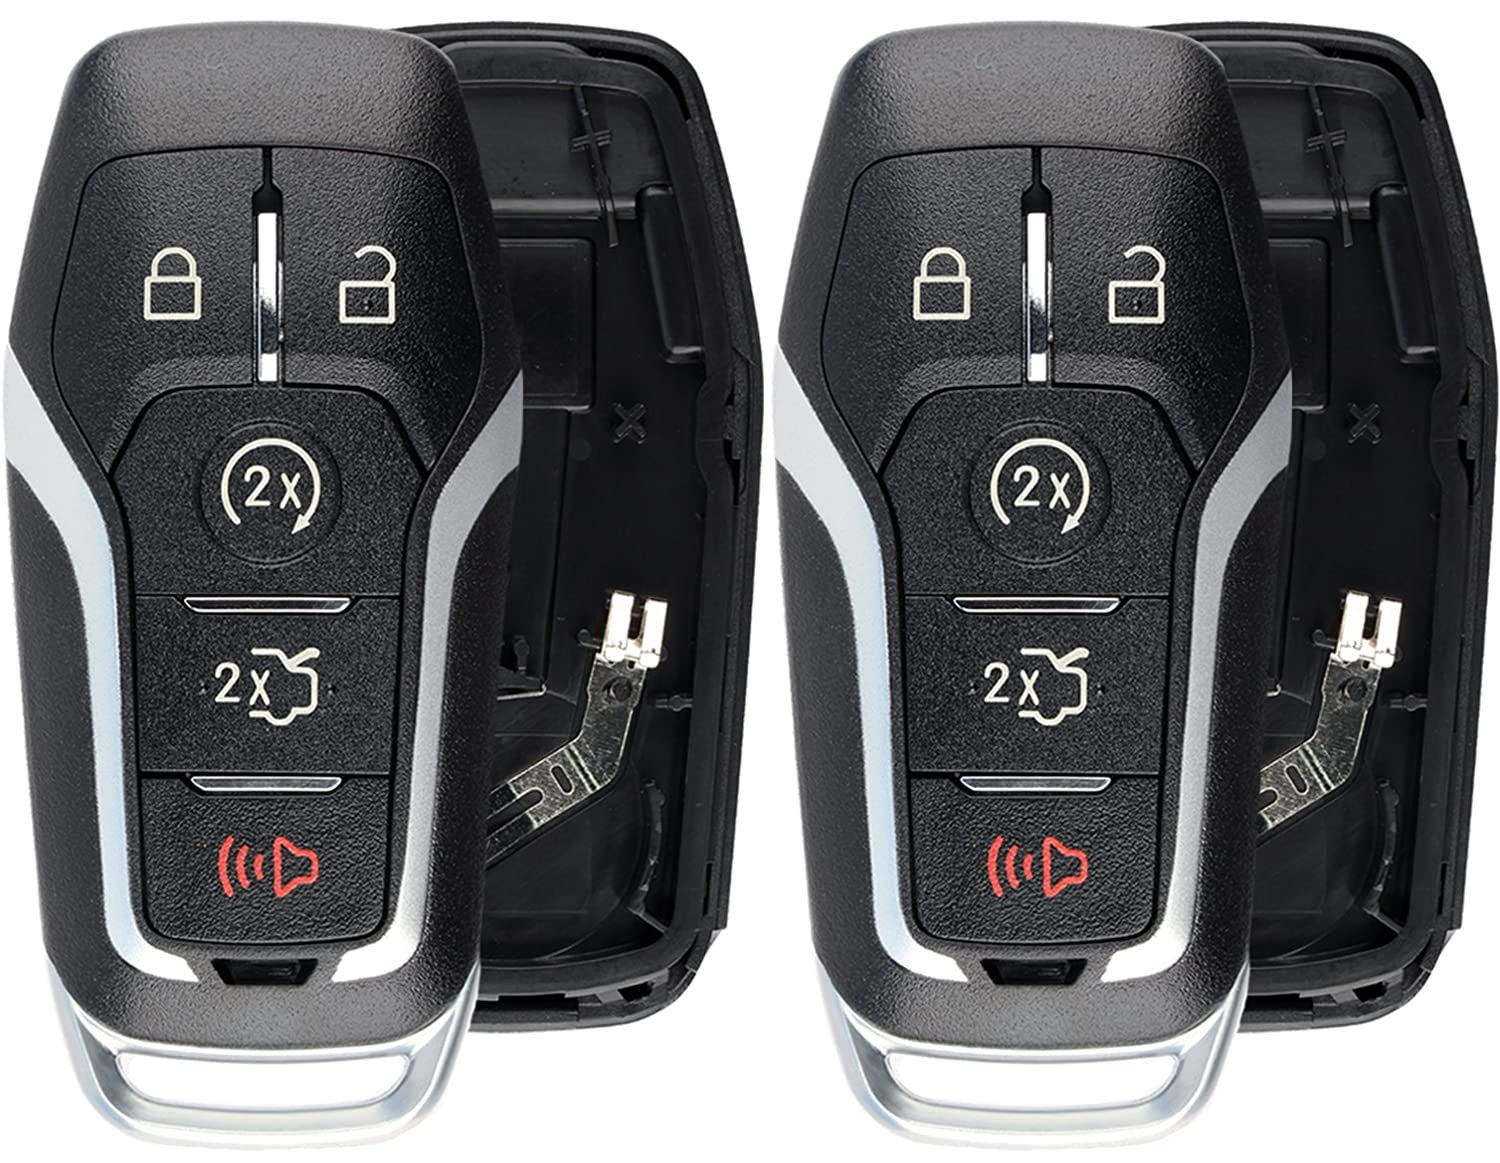 KeylessOption Keyless Entry Remote Smart Key Fob Shell Case Button Pad Cover For Ford Fusion Mustang Edge Pack of 2